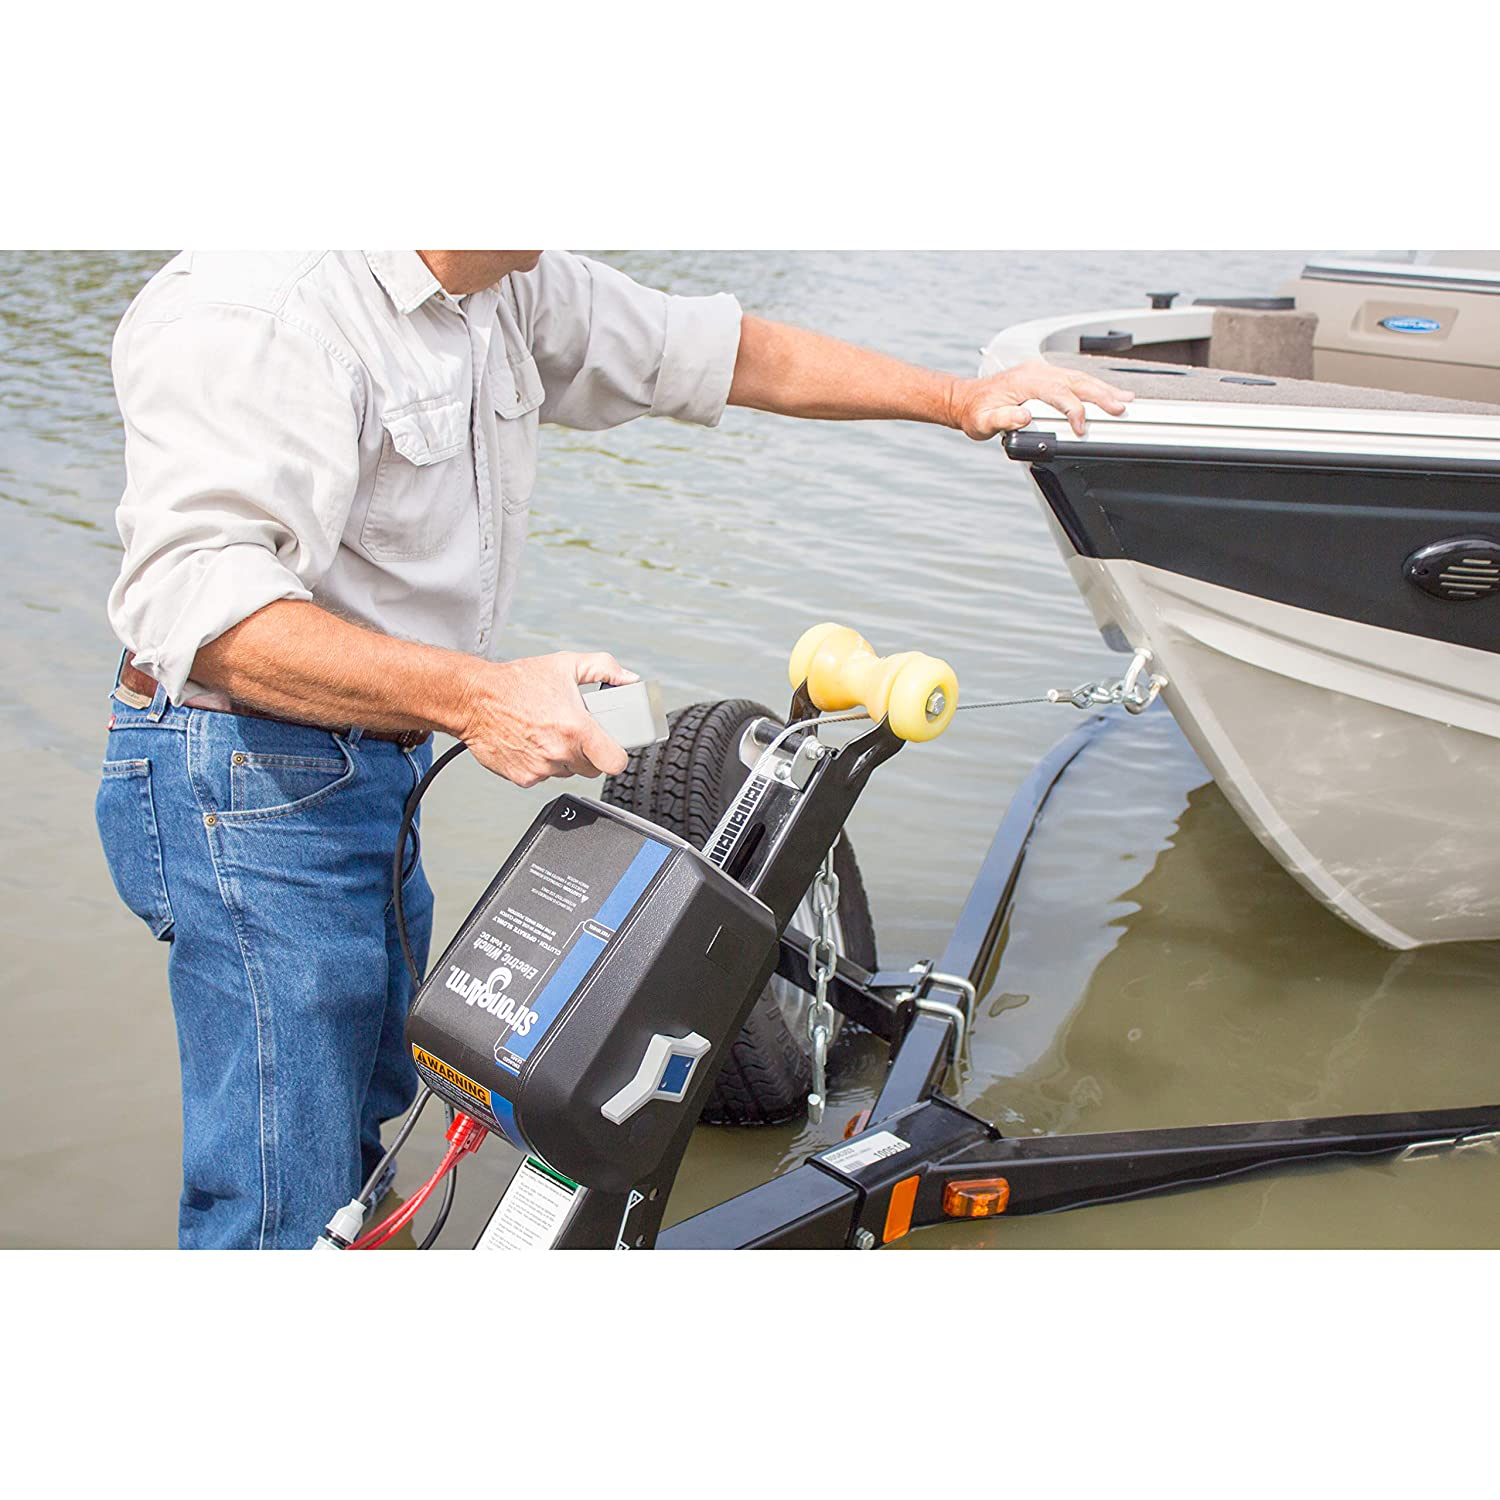 Goldenrod Dutton-Lainson SA9015 12 Volt Electric Winch with Built-in Remote 3000 lb